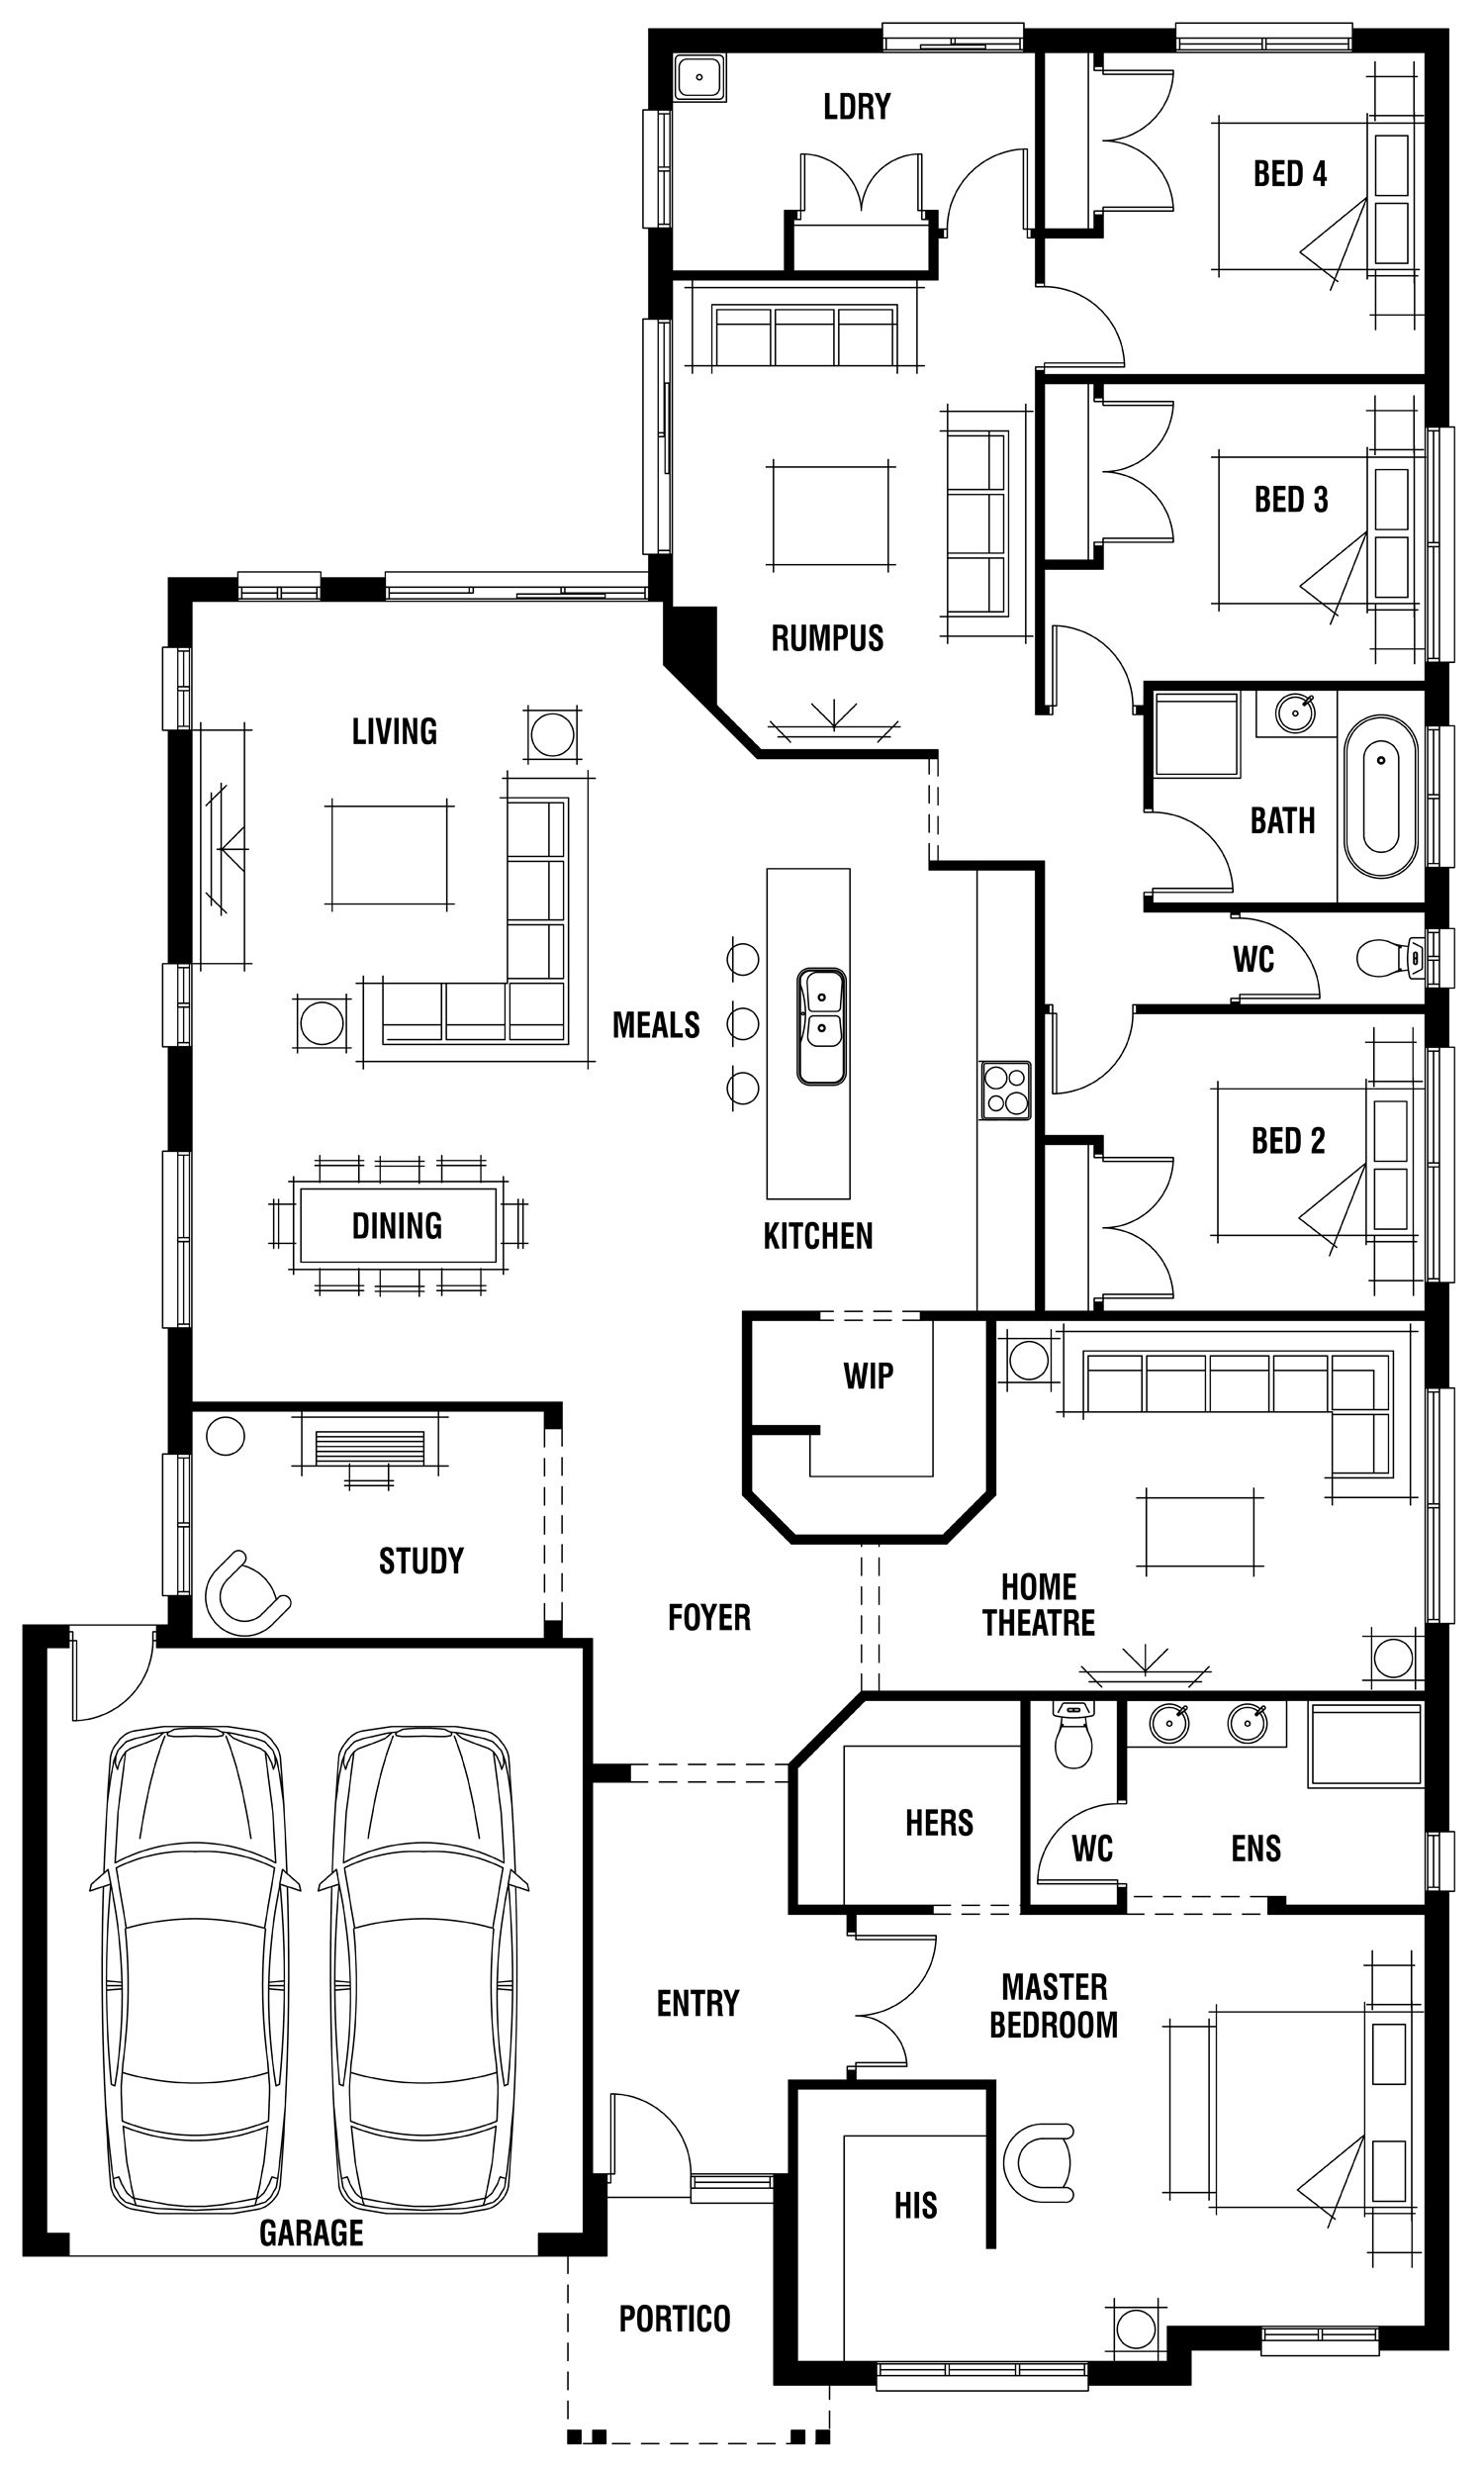 Porter Davis Homes House Design Dunedin Home Design Floor Plans House Plans New House Plans